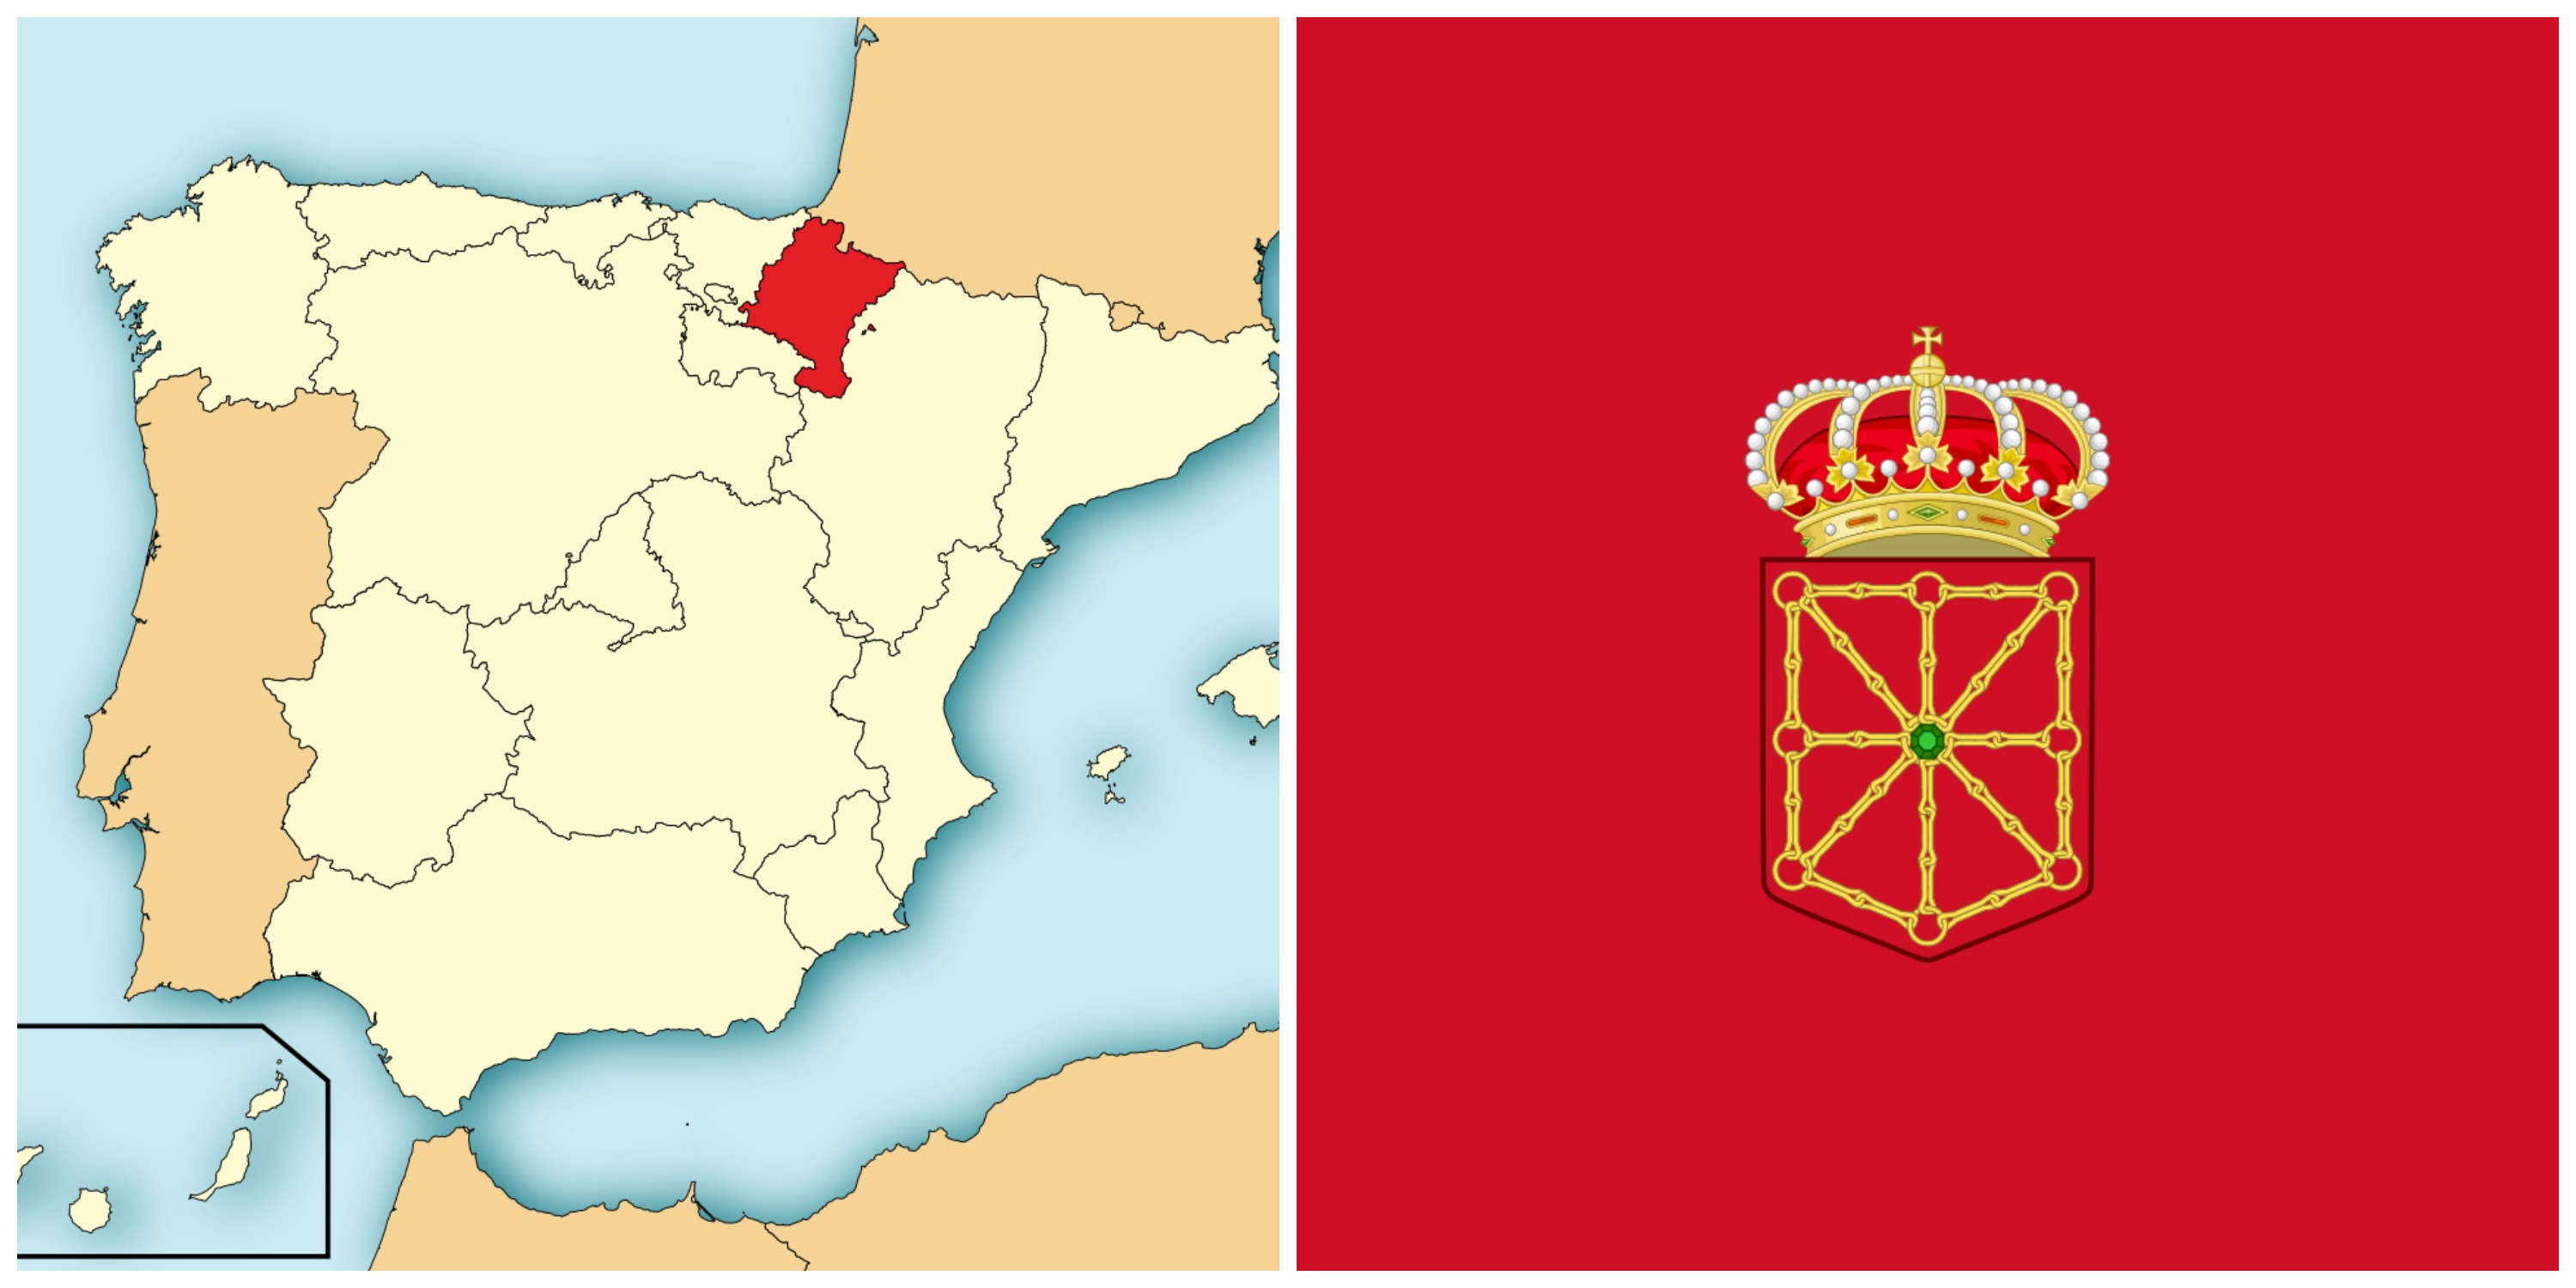 Map Of Spain Navarra.Navarra Sunshine And Siestas An American Expat In Seville Spain